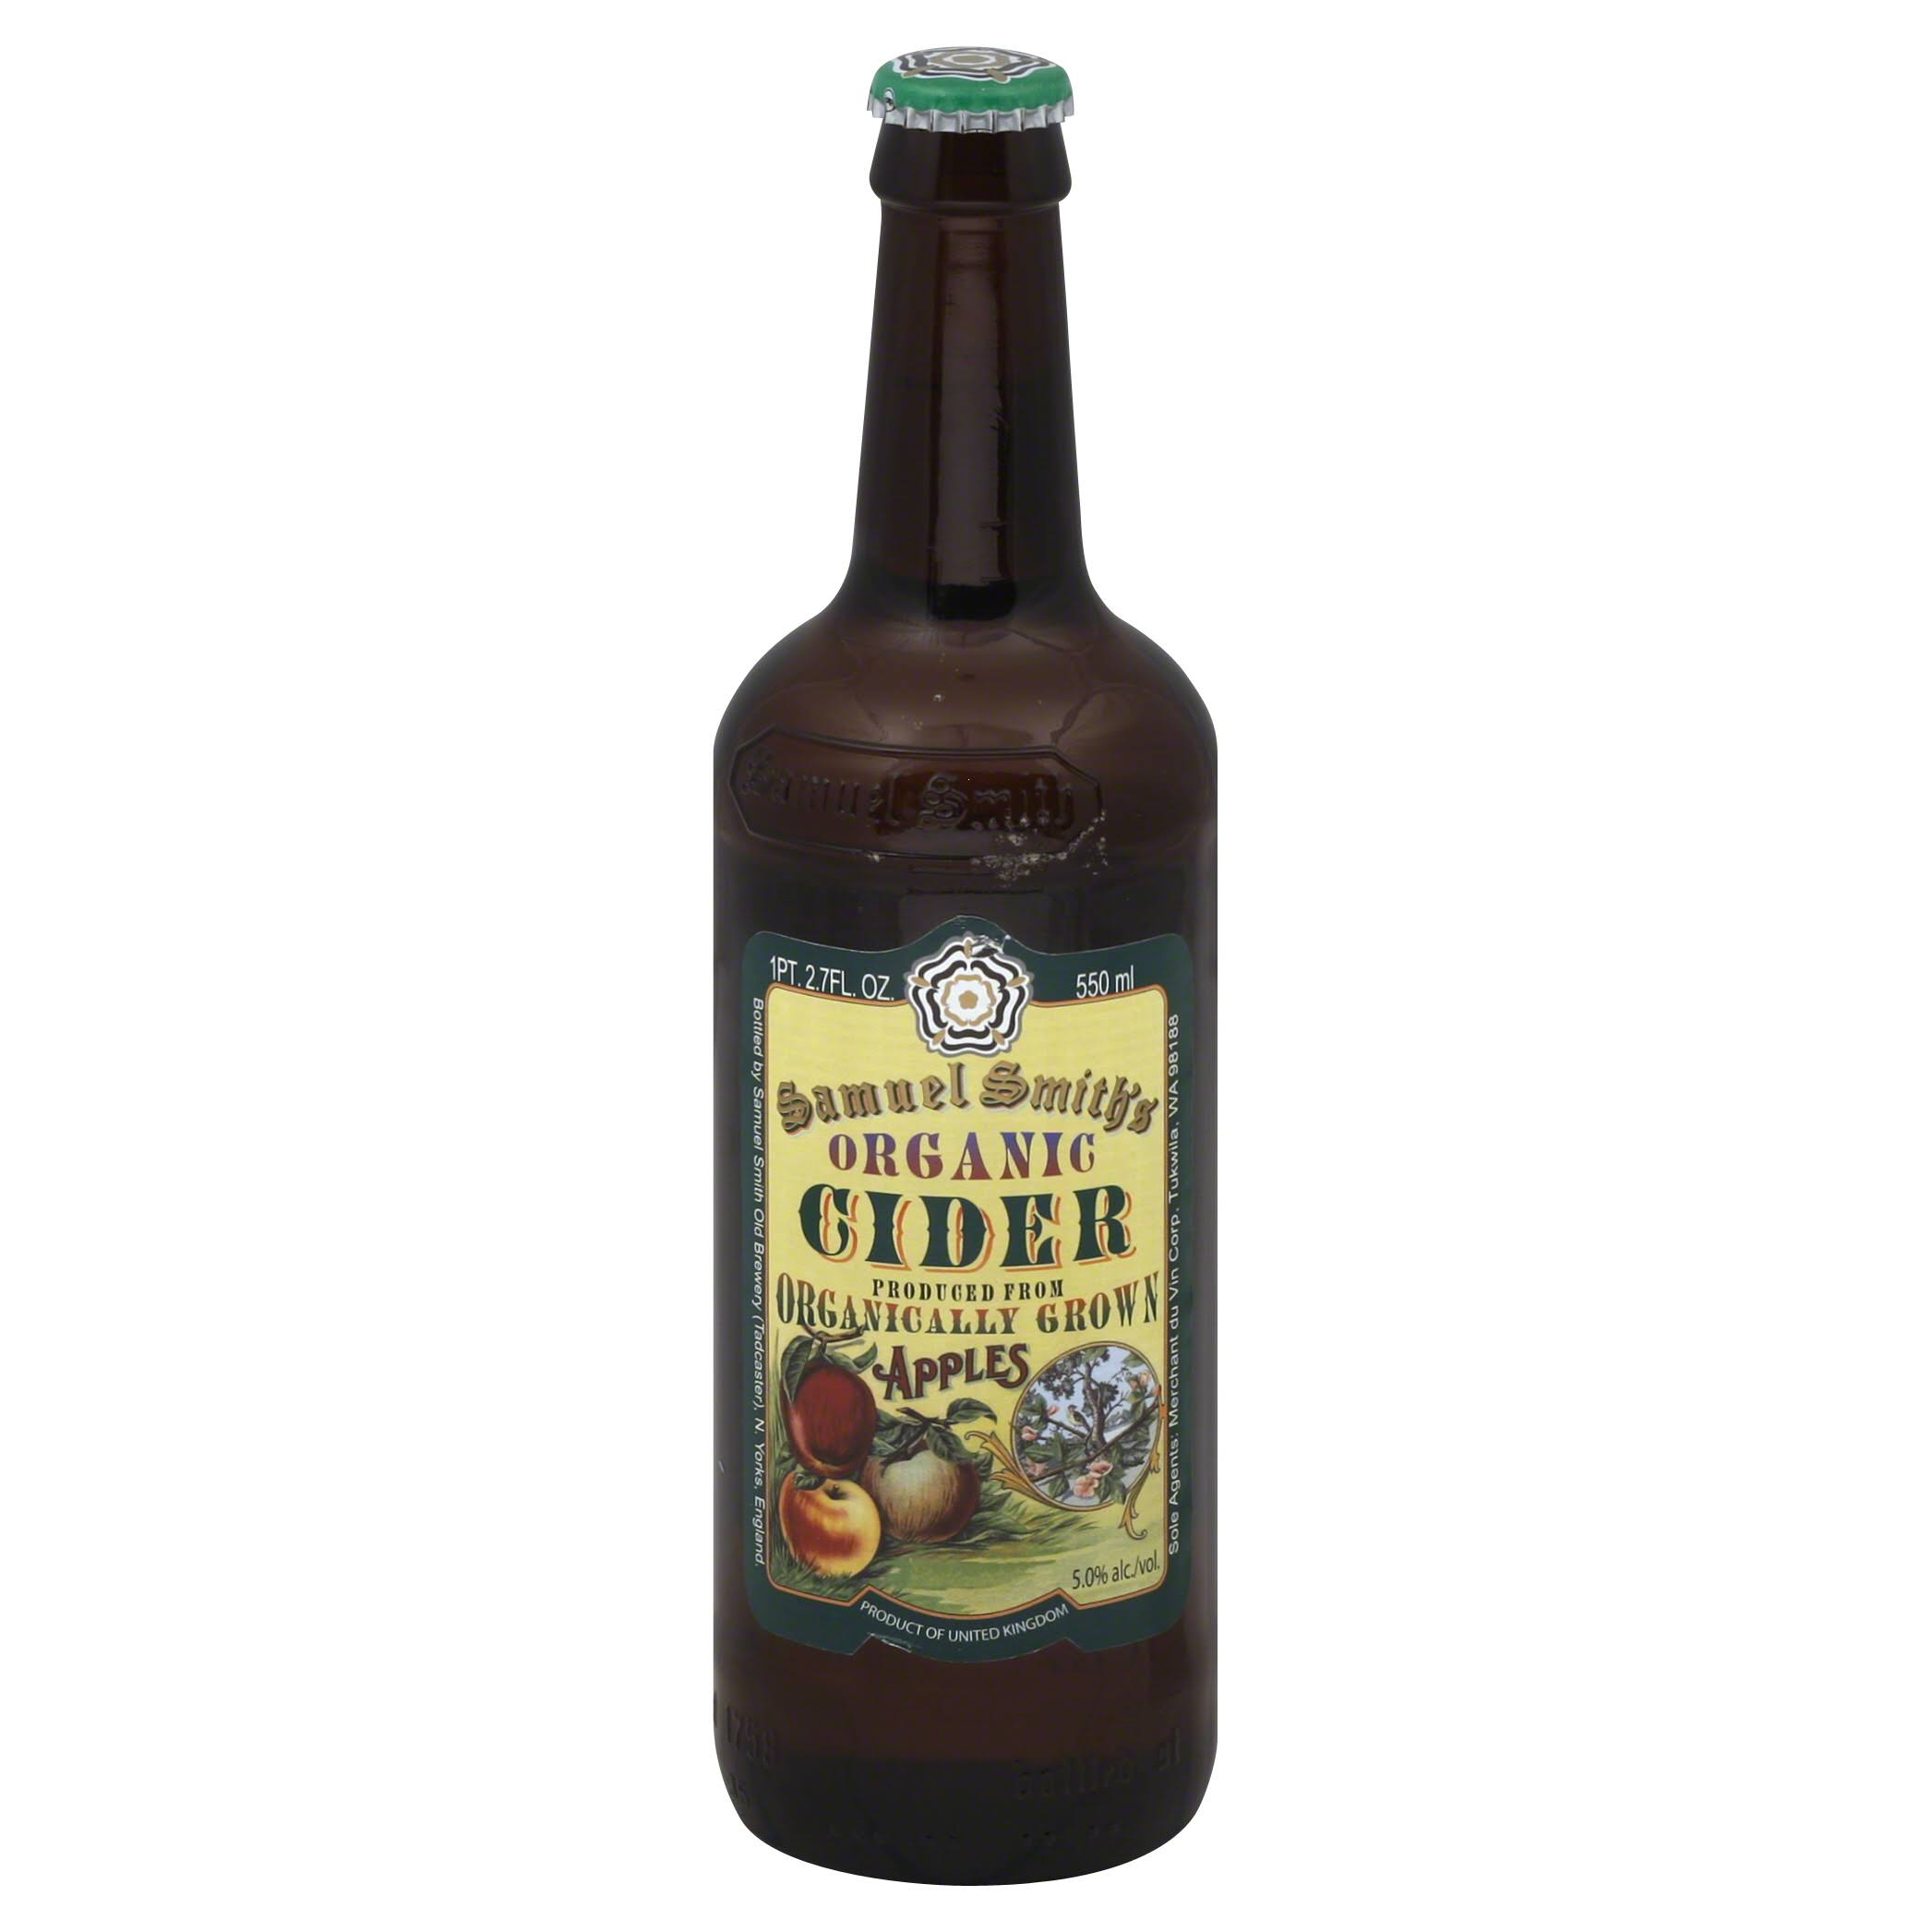 Samuel Smith's Organic Cider - 16oz